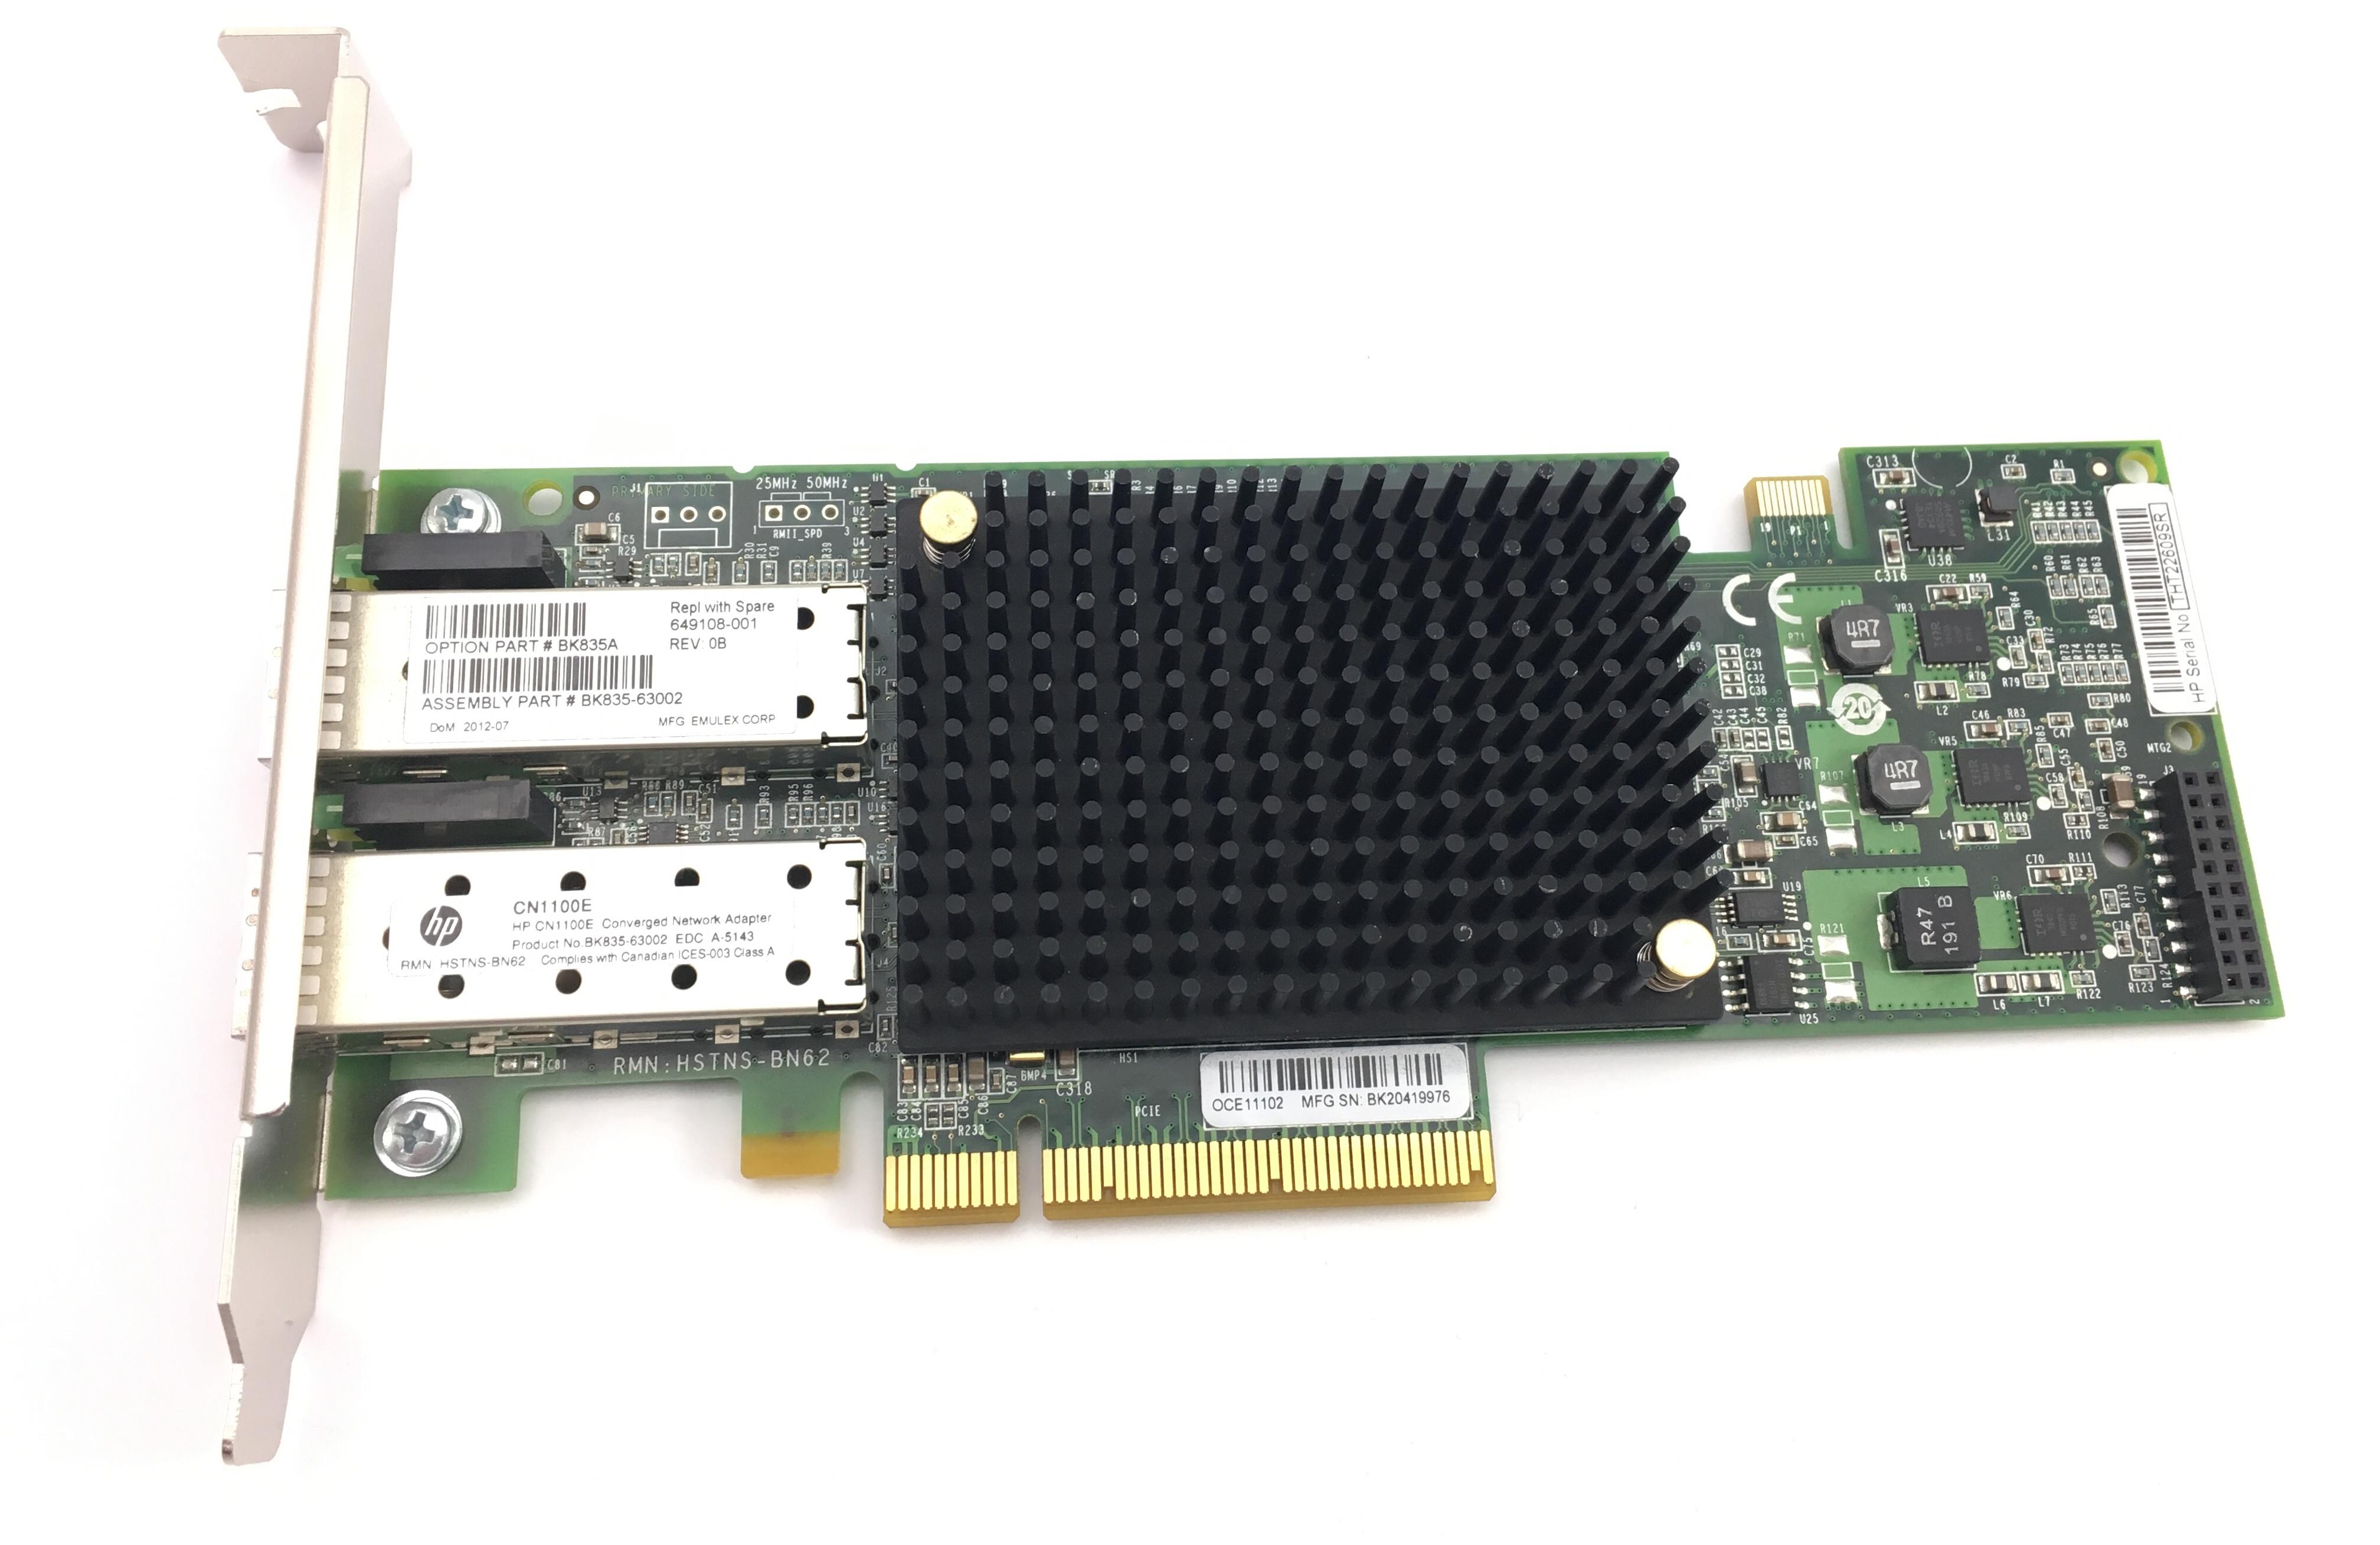 HP Cn110E Dual Port 10Gbps Converged Network Adapter (649108-001)